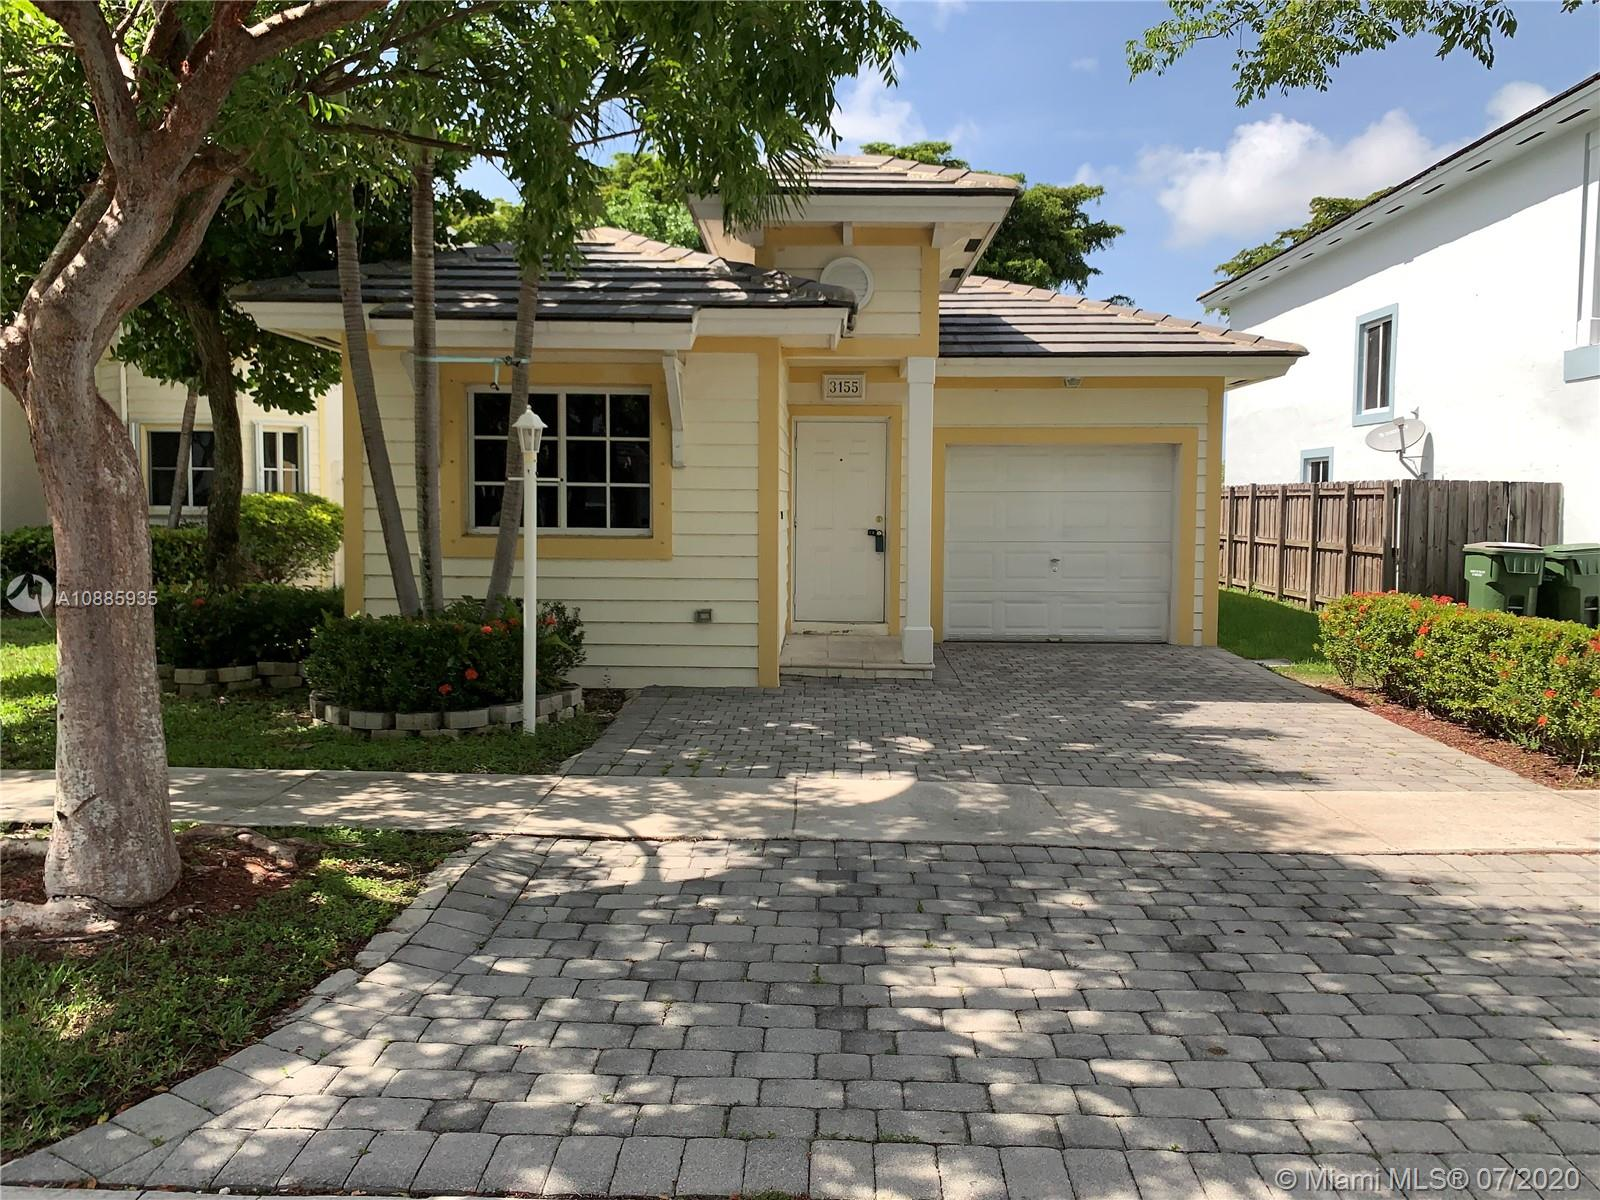 3155 NE 4th St Property Photo - Homestead, FL real estate listing